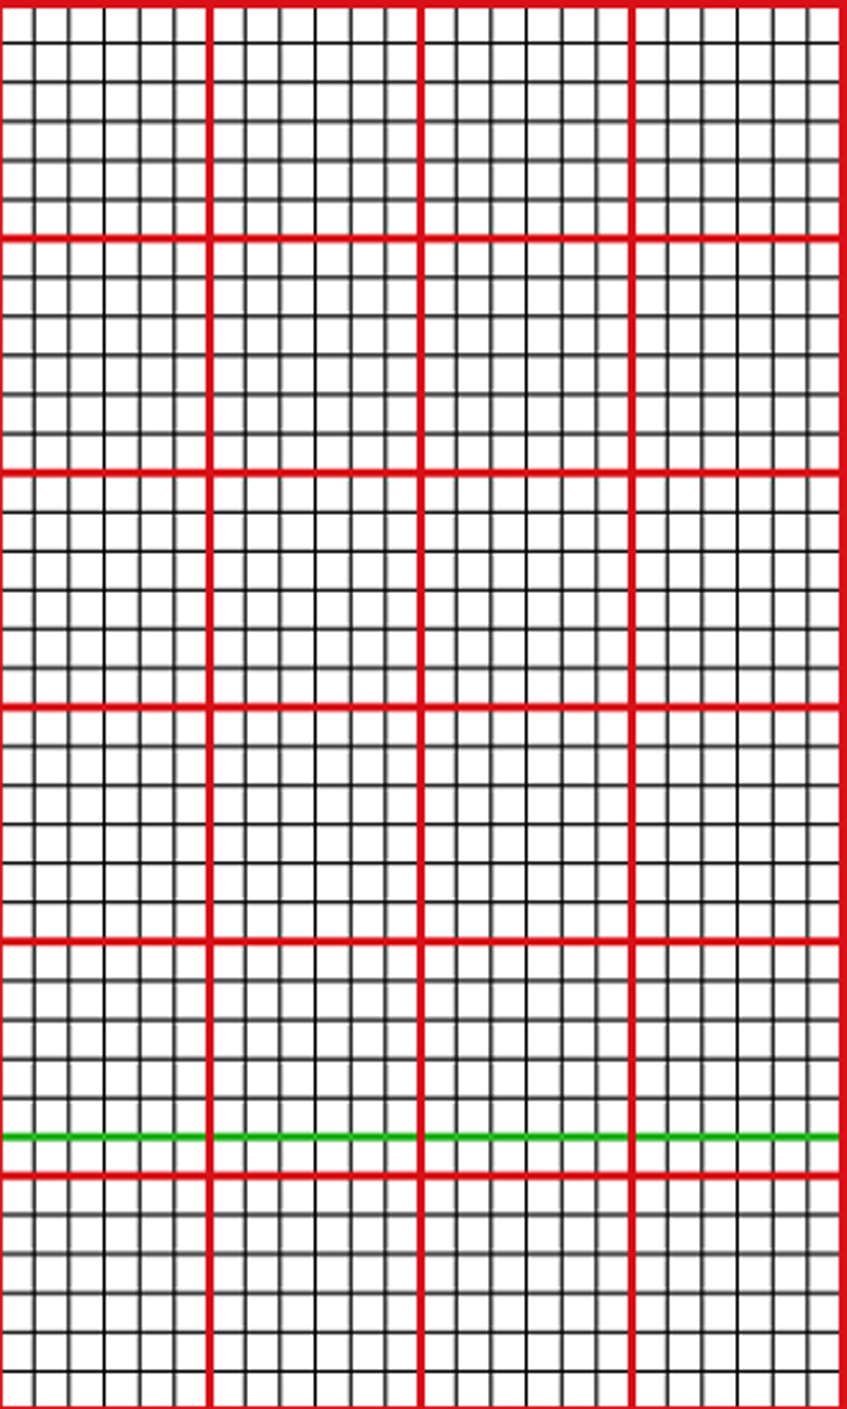 photograph about Printable Knitting Graph Paper known as Designing knit graph paper upon mac, working with Excel and Figures